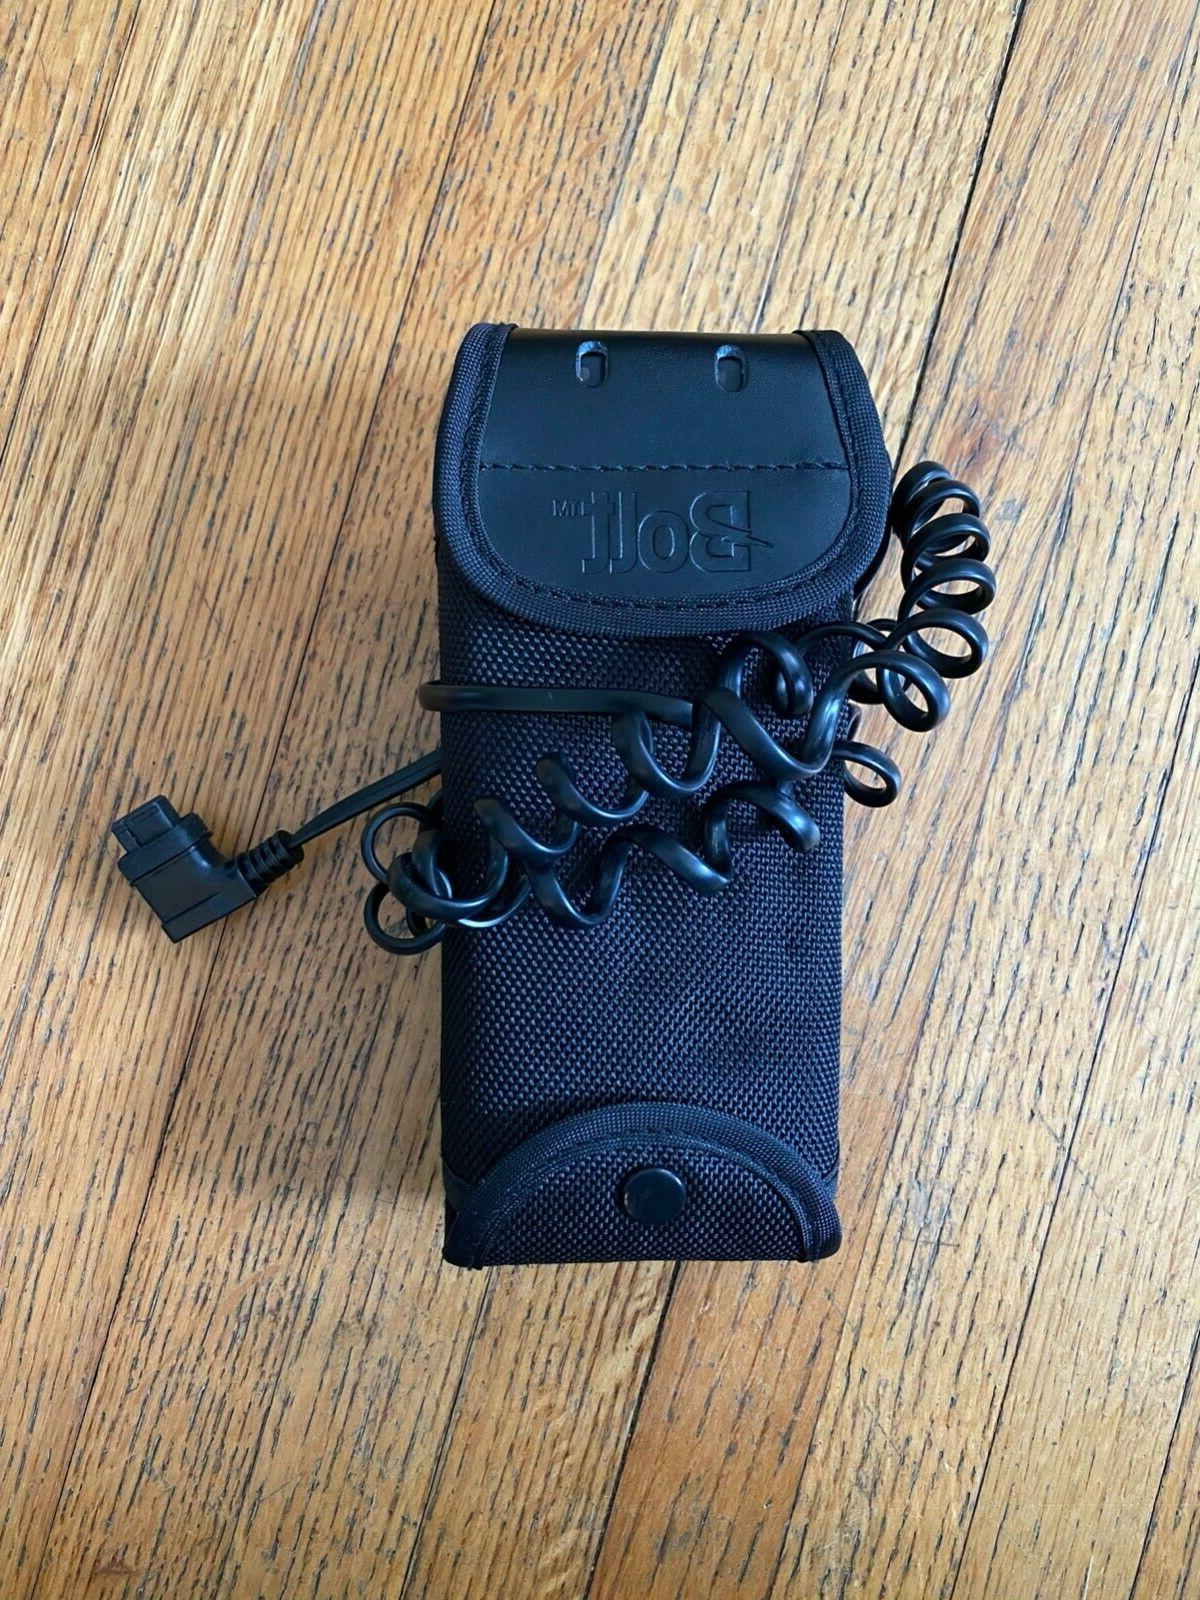 cbp c1 compact flash battery pack